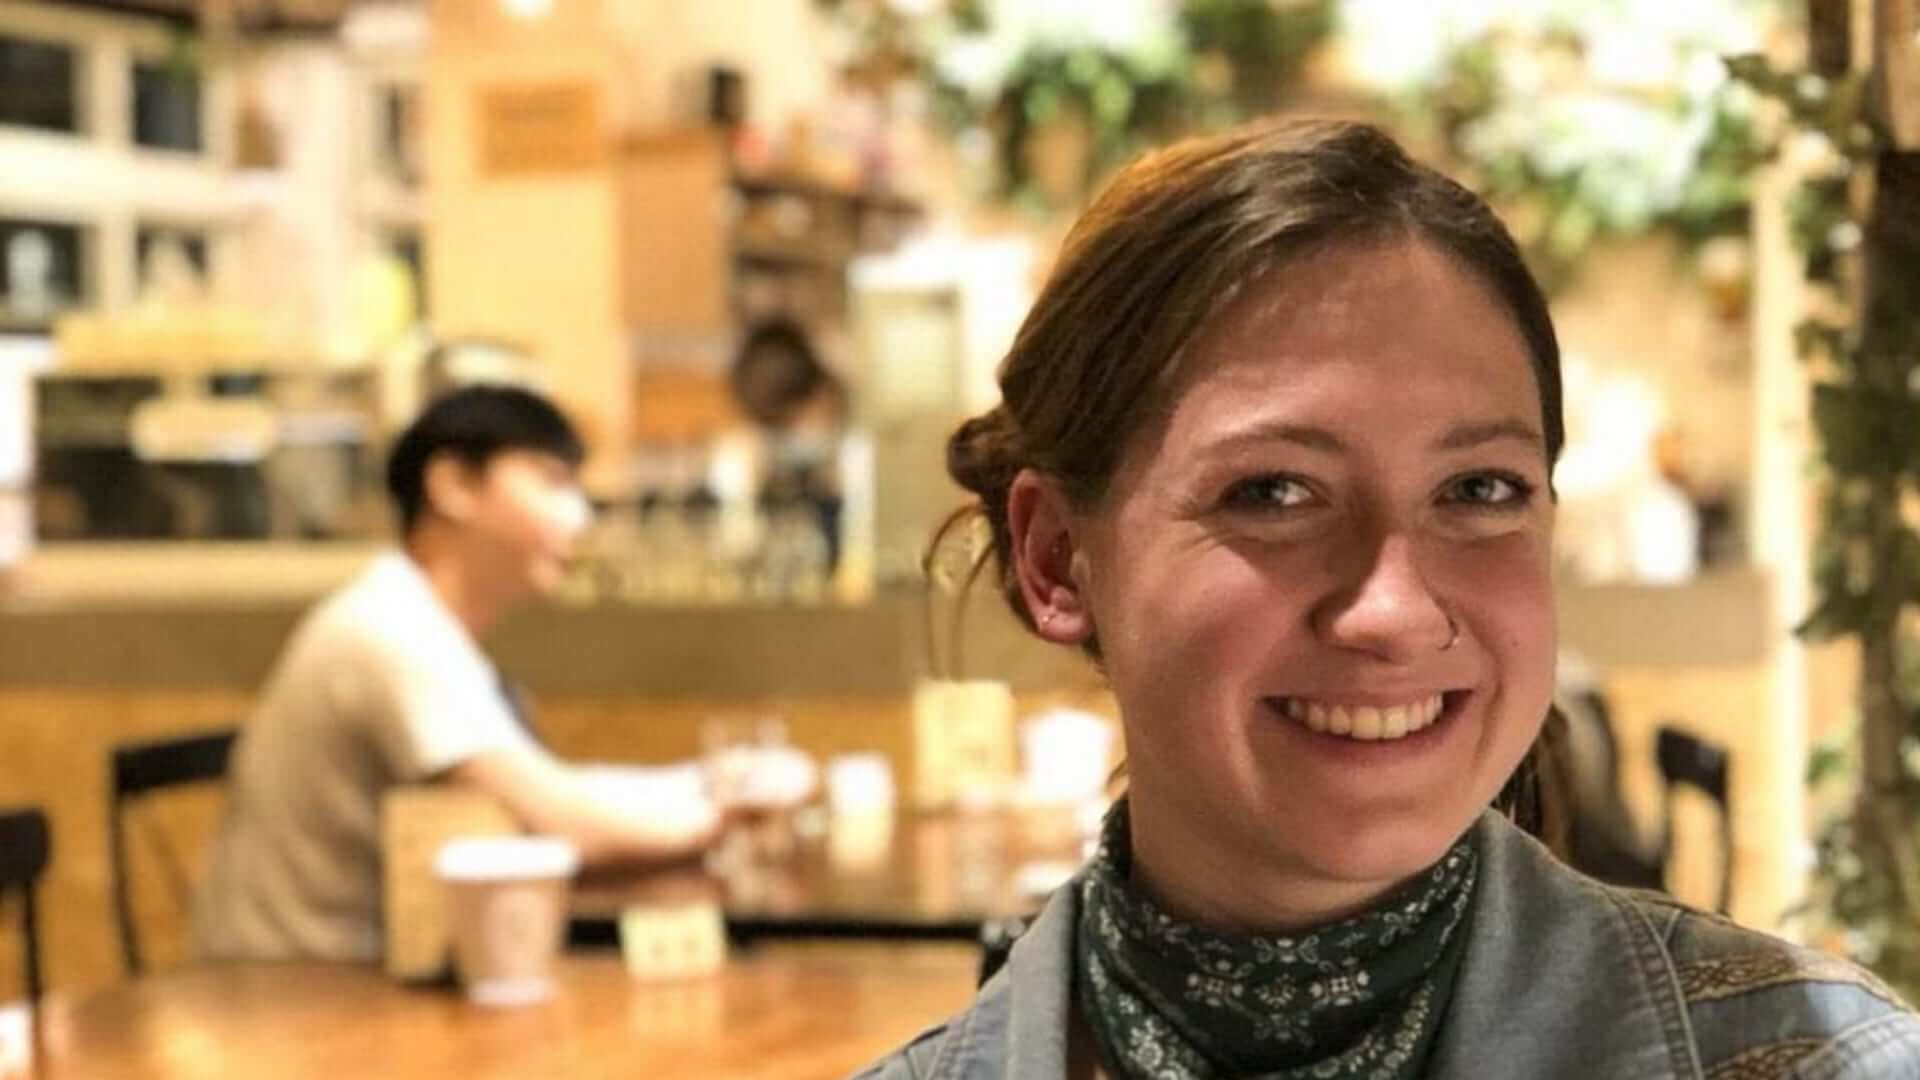 A student with a nose ring is smiling in a restaurant in Taiwan.